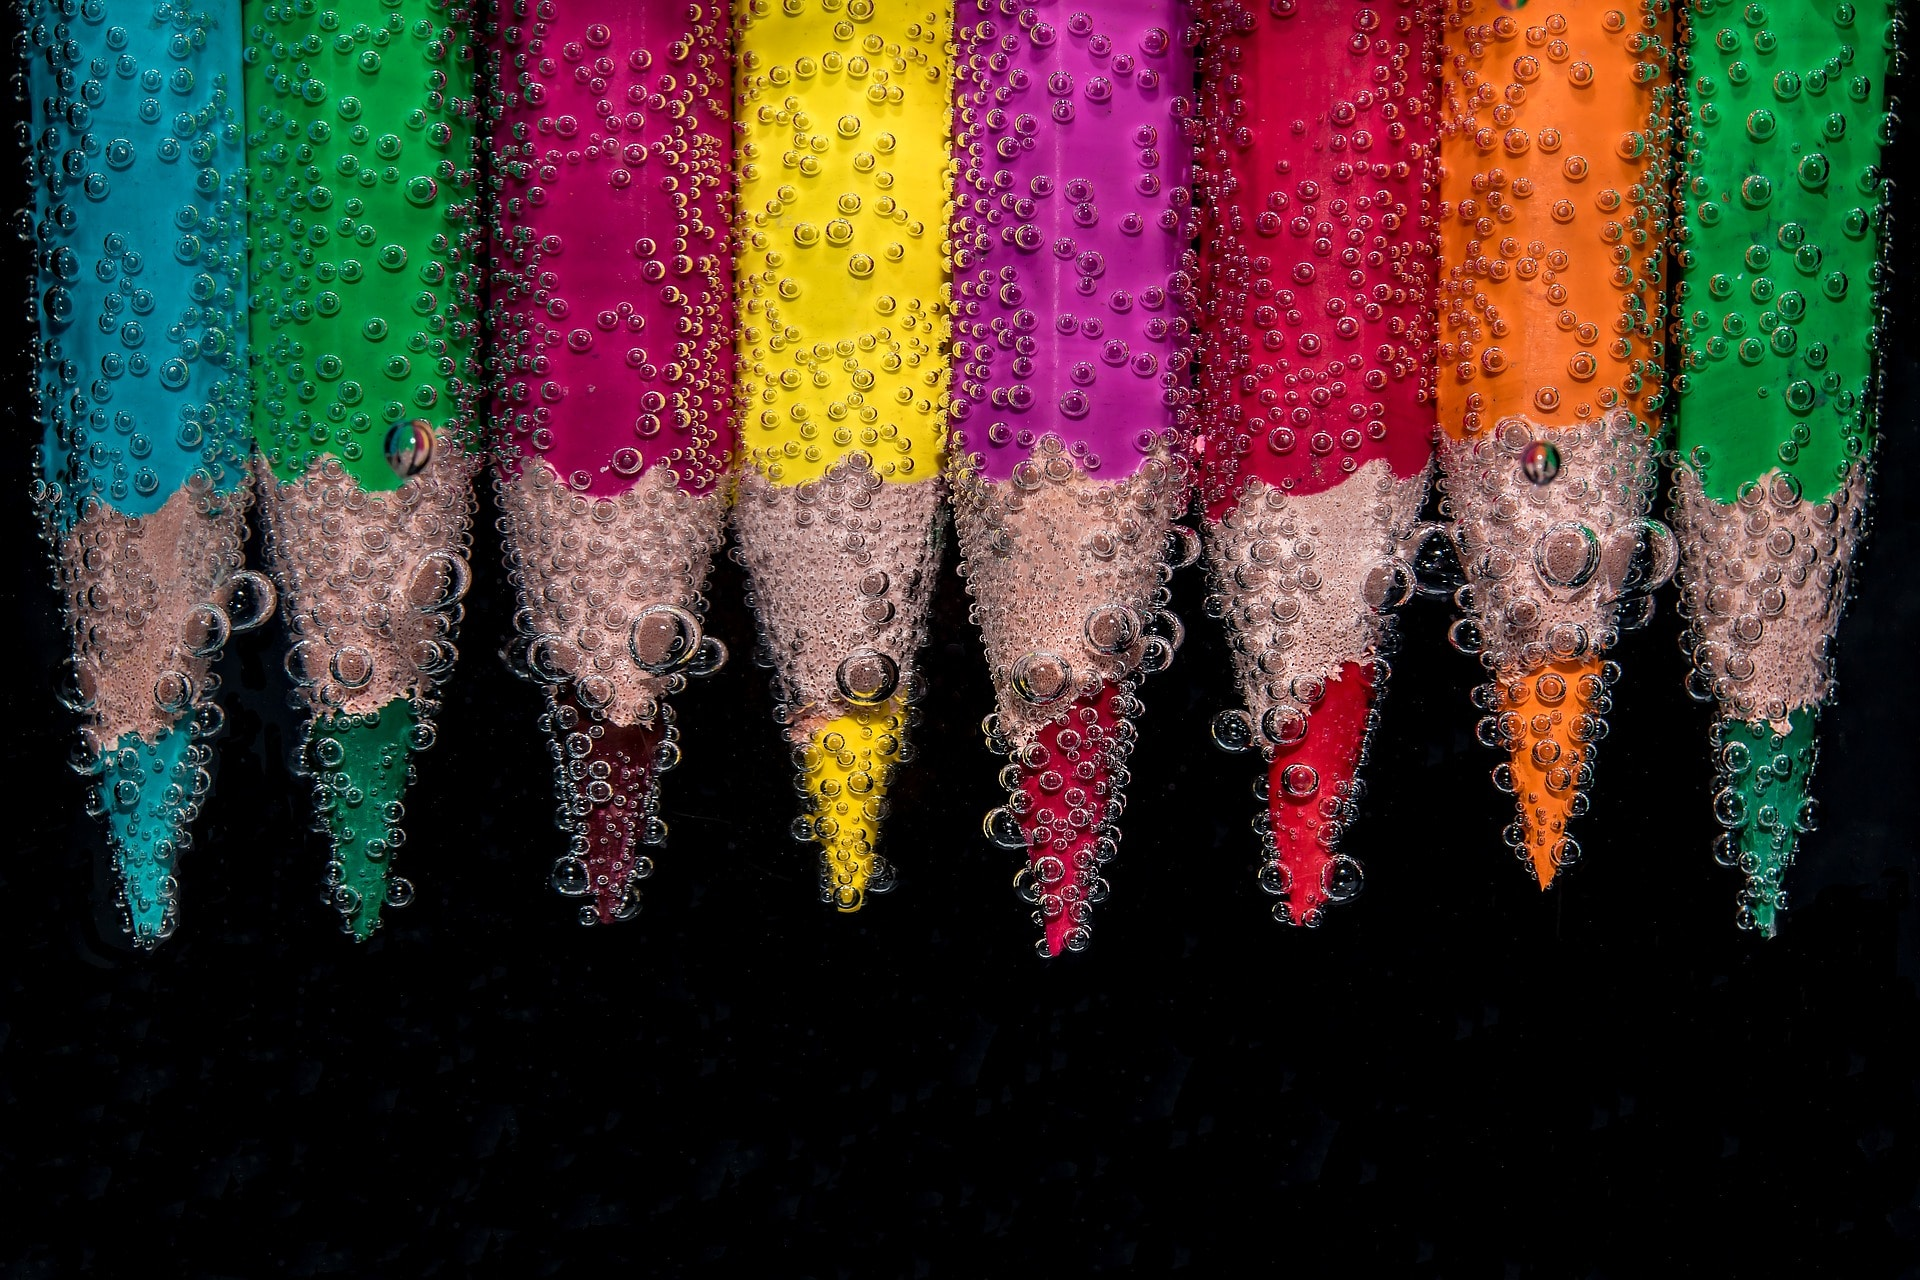 Financial independence can be color blind